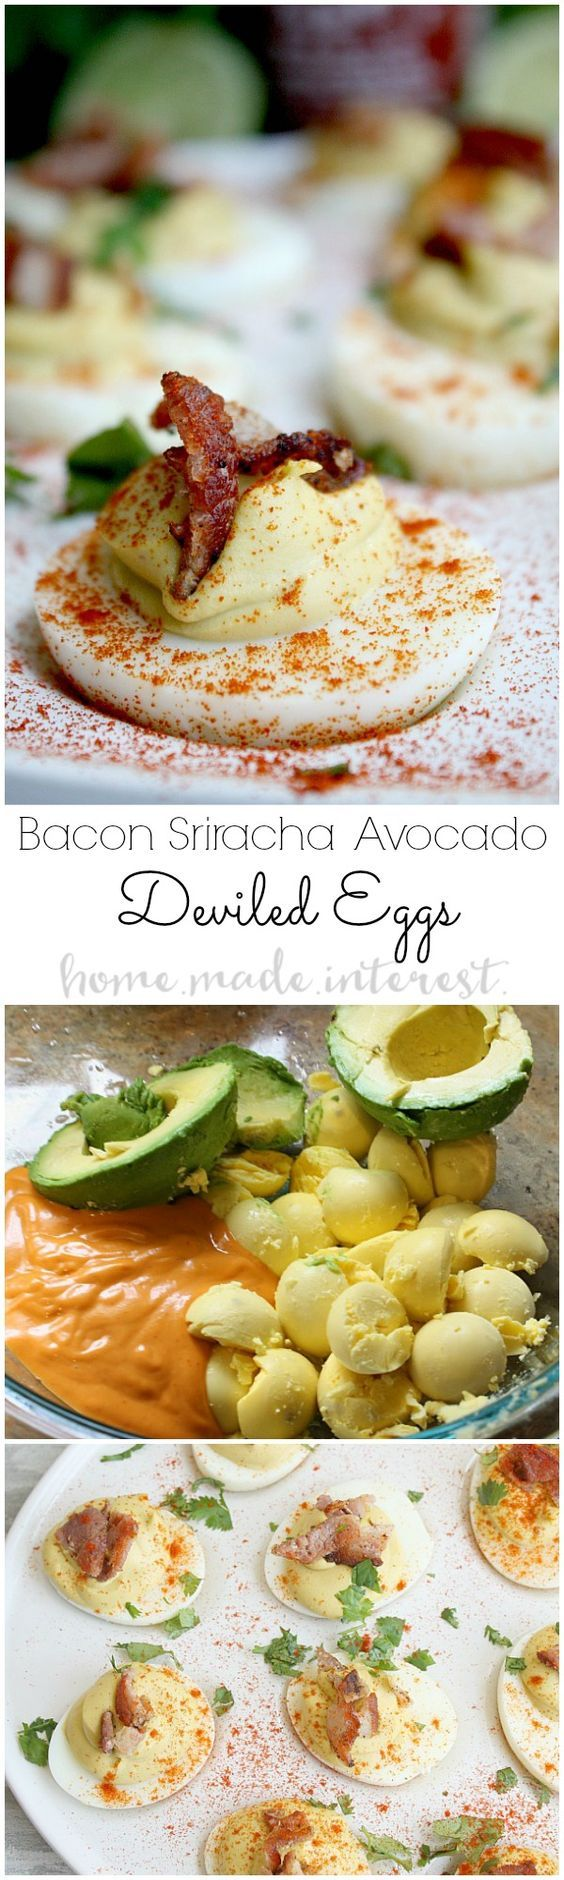 These spicy deviled eggs are a tasty twist on a classic with the zing of Sriracha, the velvety smoothness of avocado, and the saltiness of bacon. Sriracha Bacon and Avocado deviled eggs are low carb and gluten free and make a great party appetizer and Easter dinner and Easter brunch recipe!